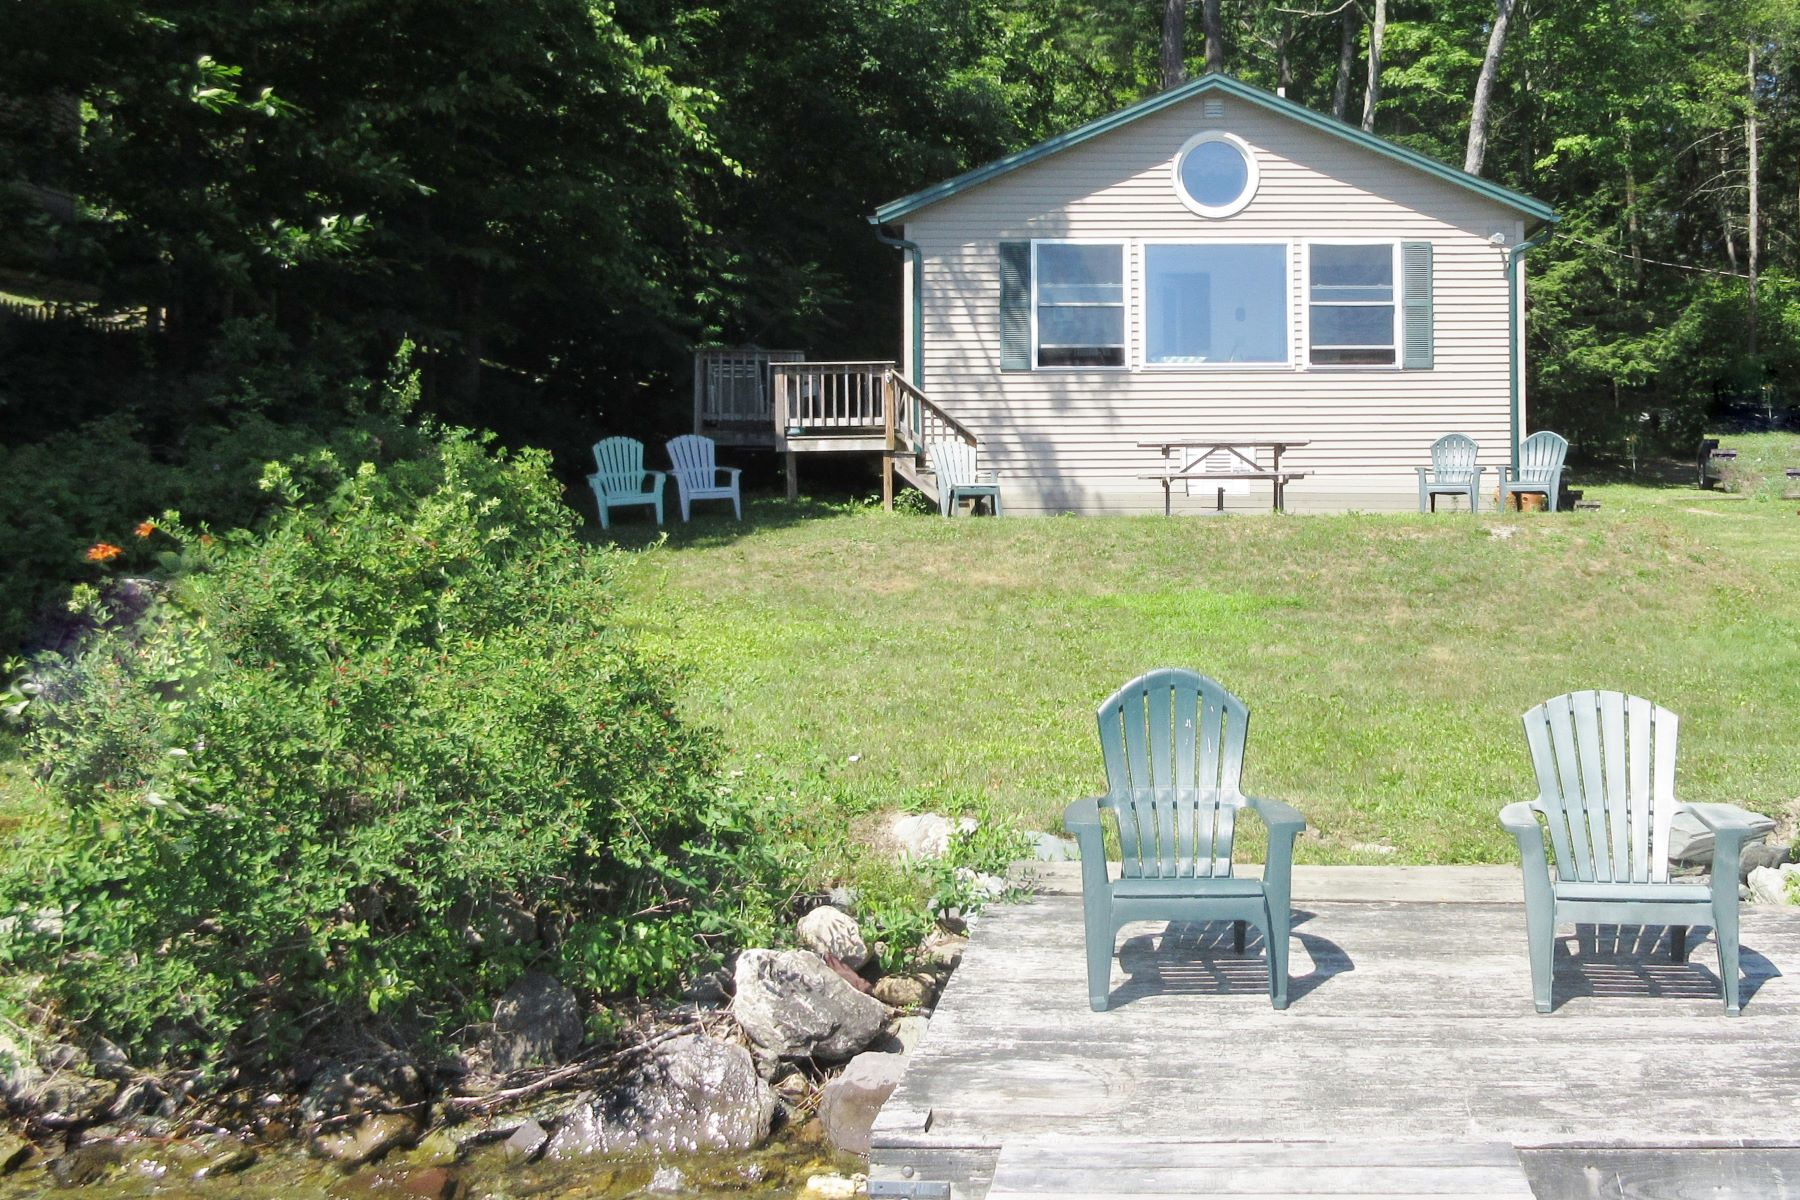 Single Family Home for Sale at Lake Front Bungalow 199 Wilson Rd Castleton, Vermont 05735 United States